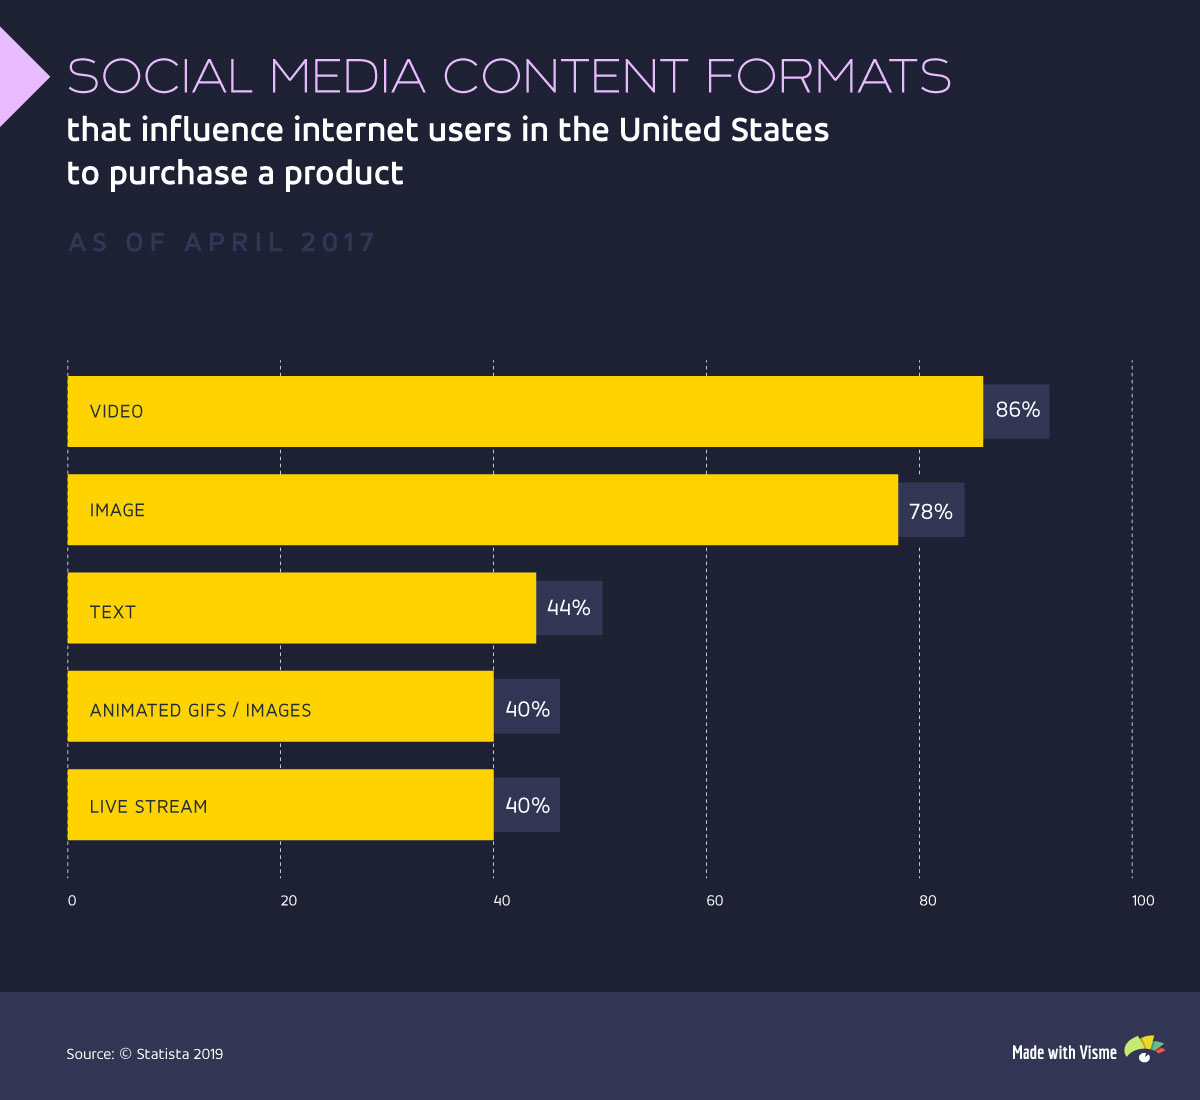 ecommerce marketing visual content social media content influence statistics infographic